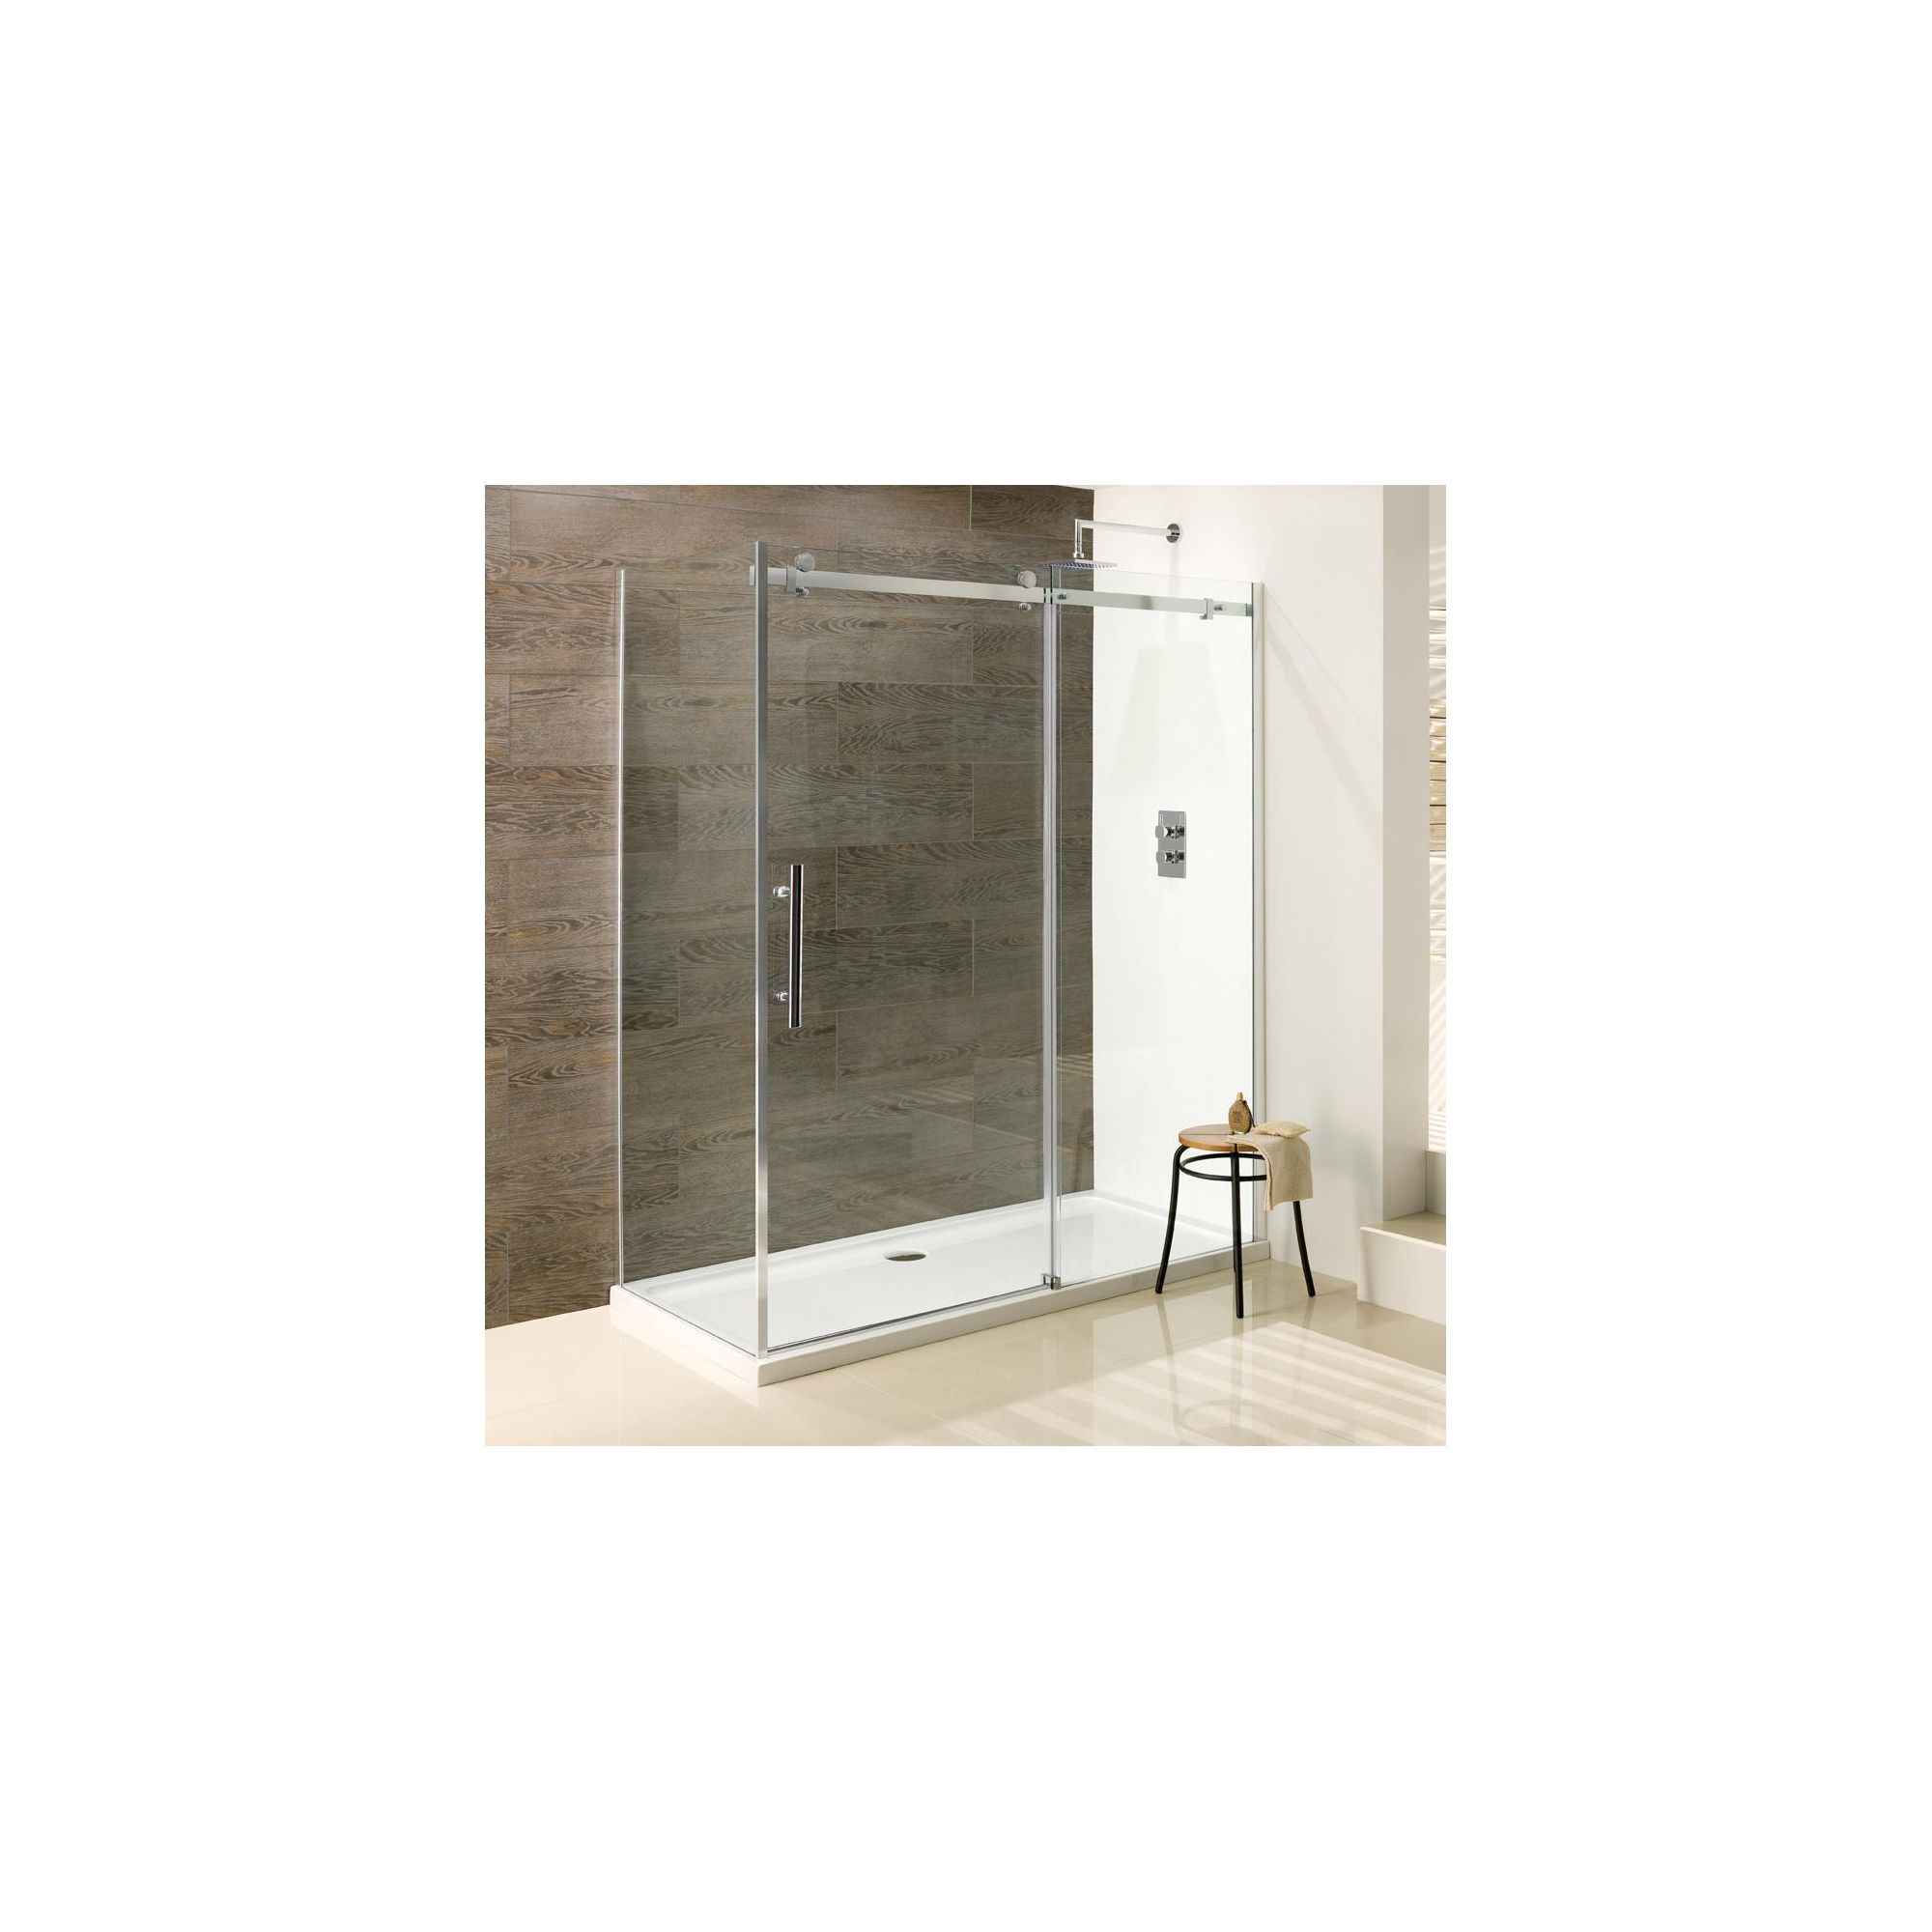 Duchy Deluxe Silver Sliding Door Shower Enclosure with Side Panel 1400mm x 700mm (Complete with Tray), 10mm Glass at Tesco Direct